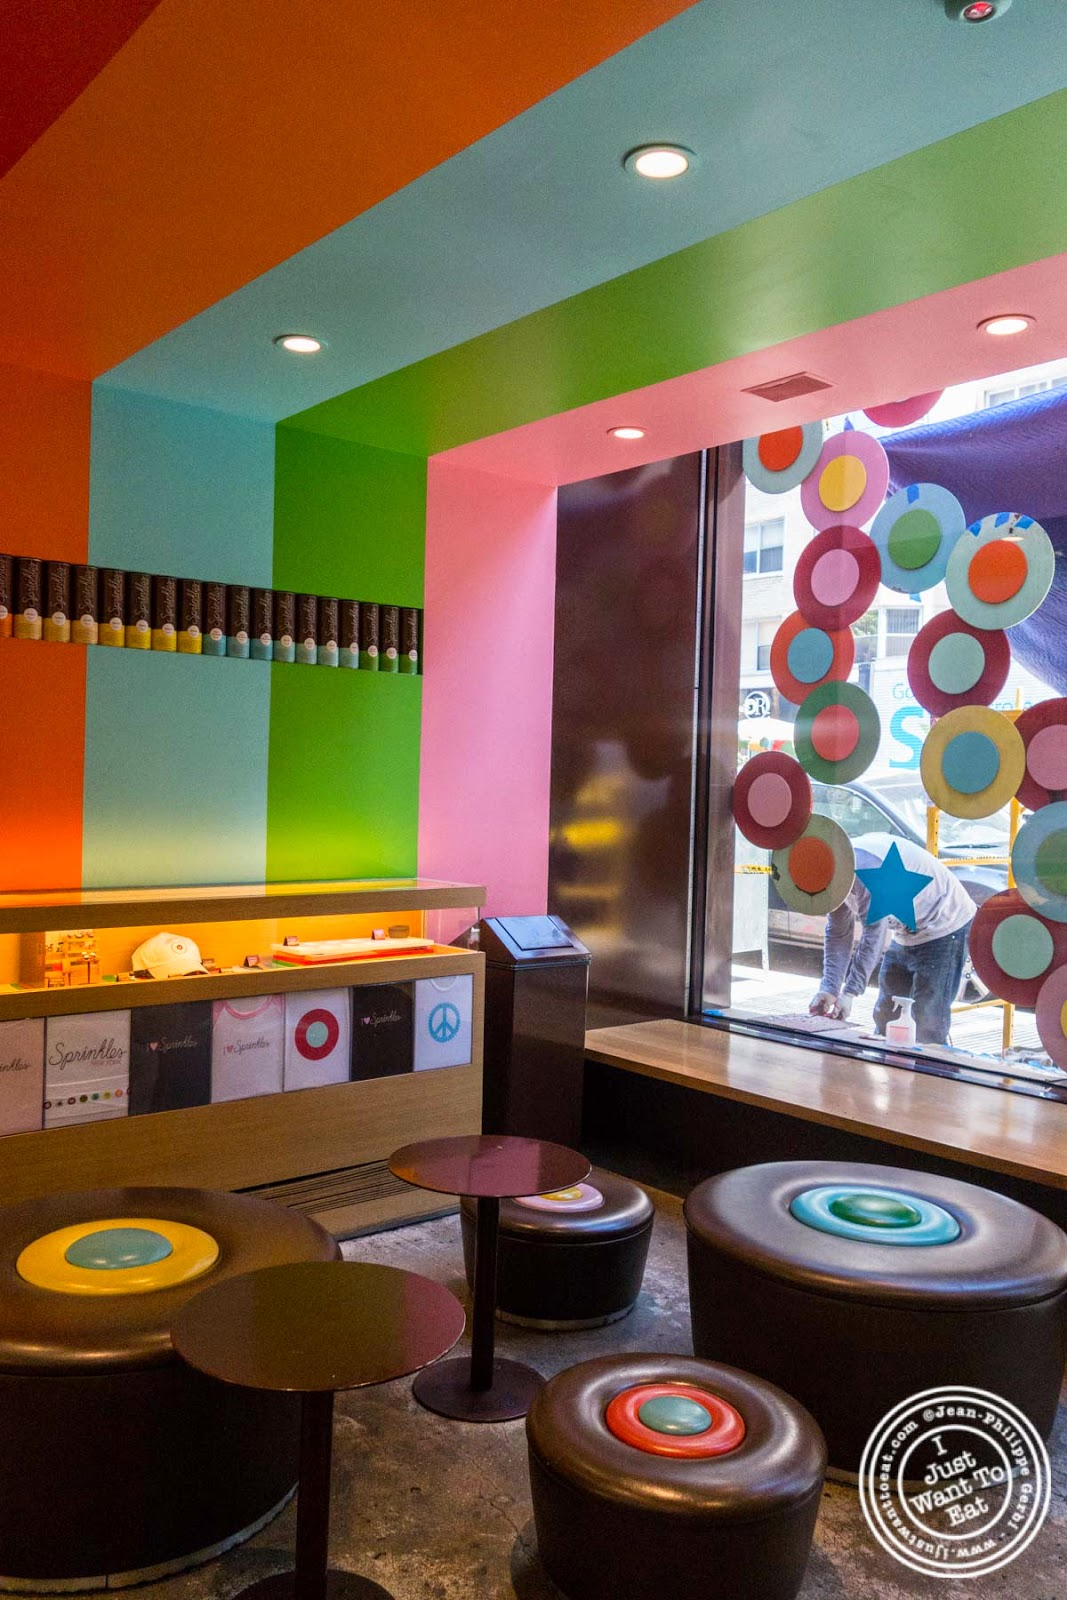 image of Decor at Sprinkles Cupcakes in New York, NY